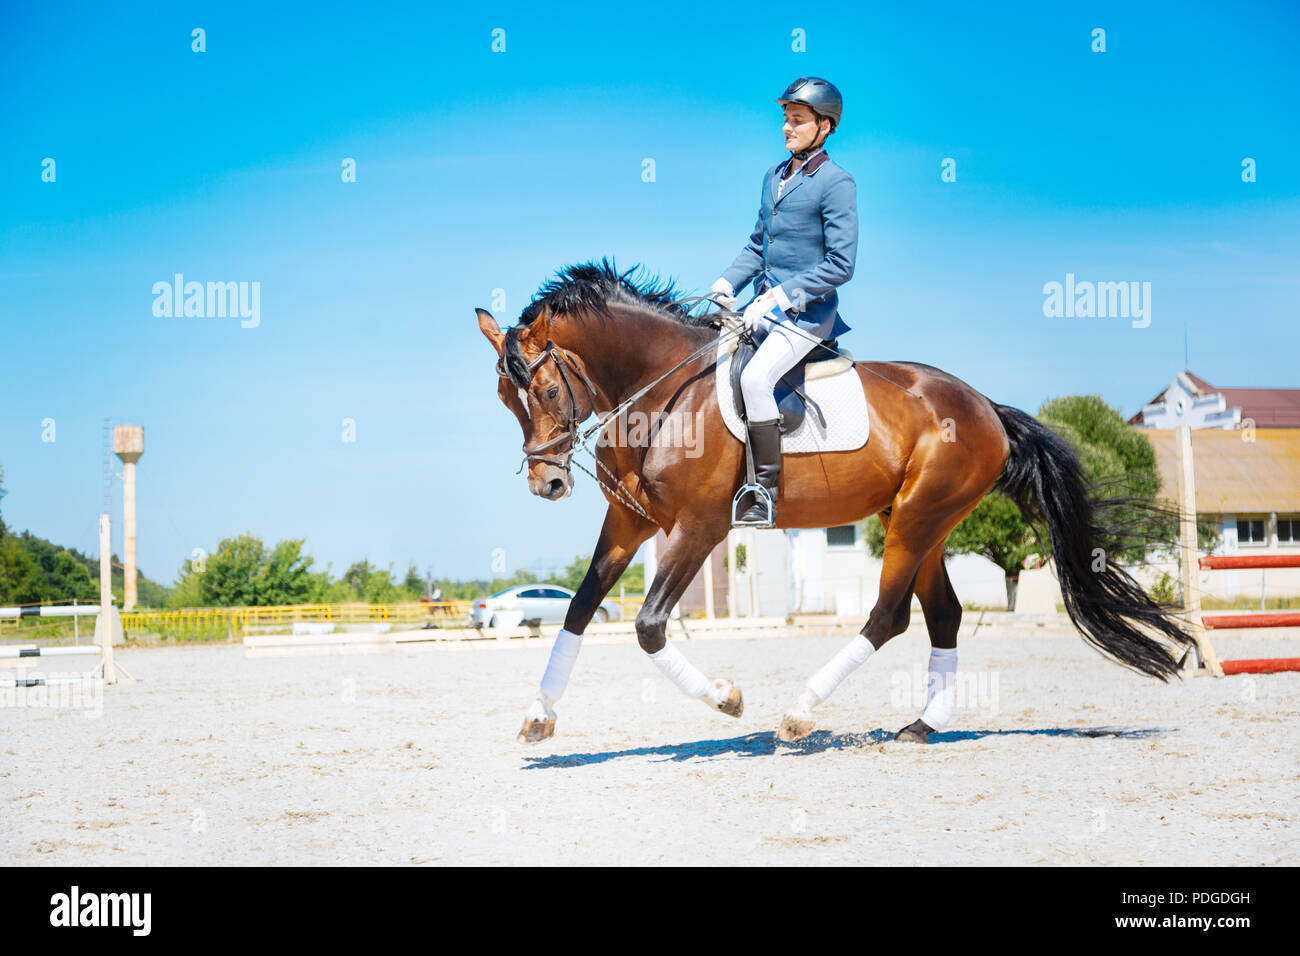 Experienced horse man riding professional racehorse Professional racehorse. - Stock Image